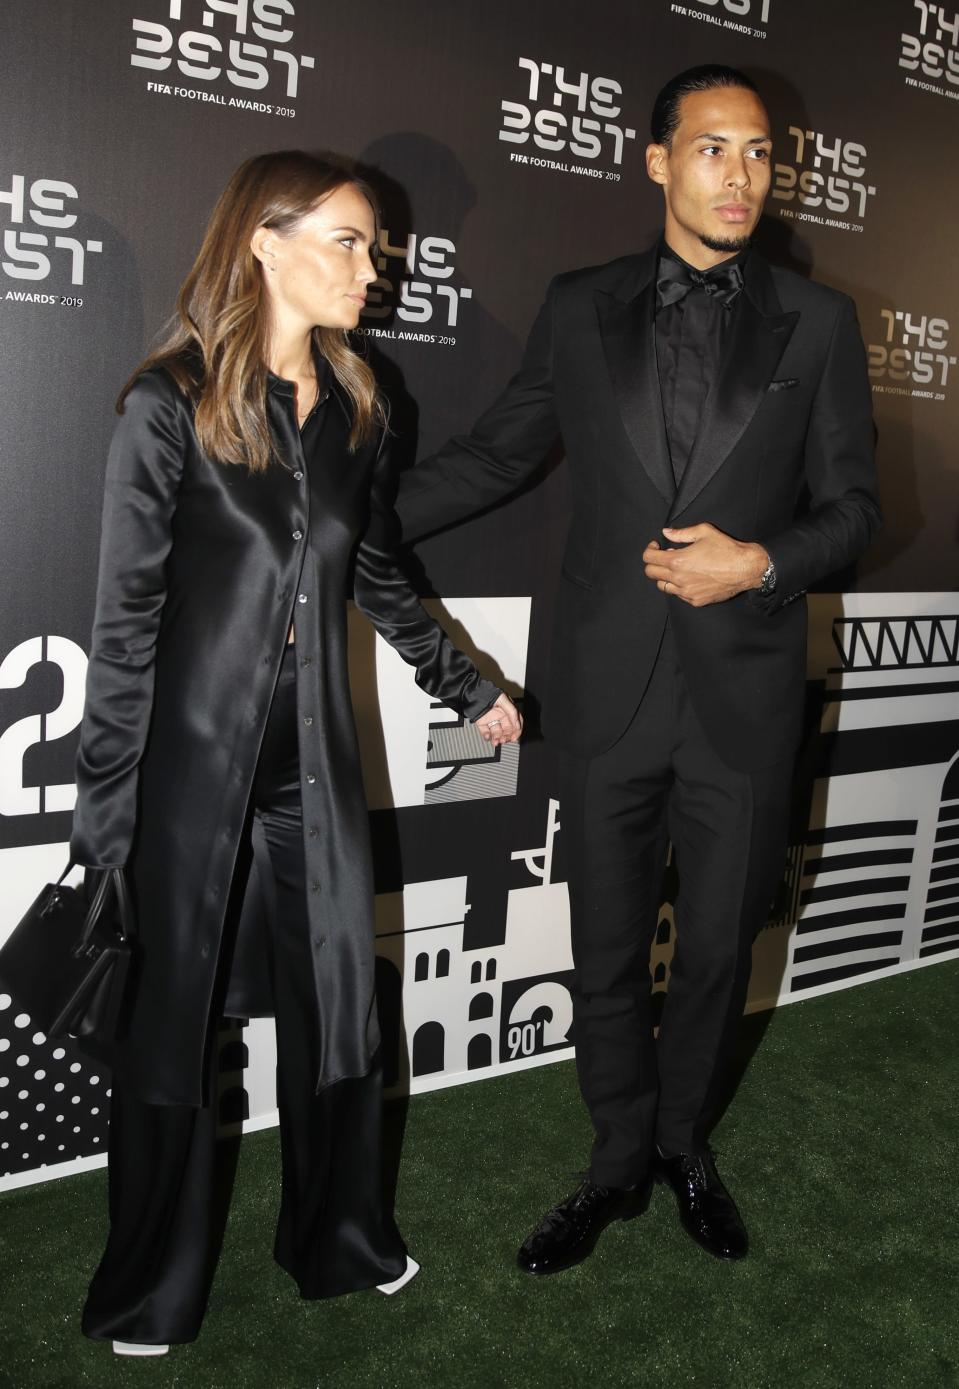 Netherlands defender Virgil van Dijk arrives with his partner Like Nooitgedagt to attend the Best FIFA soccer awards, in Milan's La Scala theater, northern Italy, Monday, Sept. 23, 2019. Virgil van Dijk is up against five-time winners Cristiano Ronaldo and Lionel Messi for the FIFA best player award and United States forward Megan Rapinoe is the favorite for the women's award. (AP Photo/Luca Bruno)